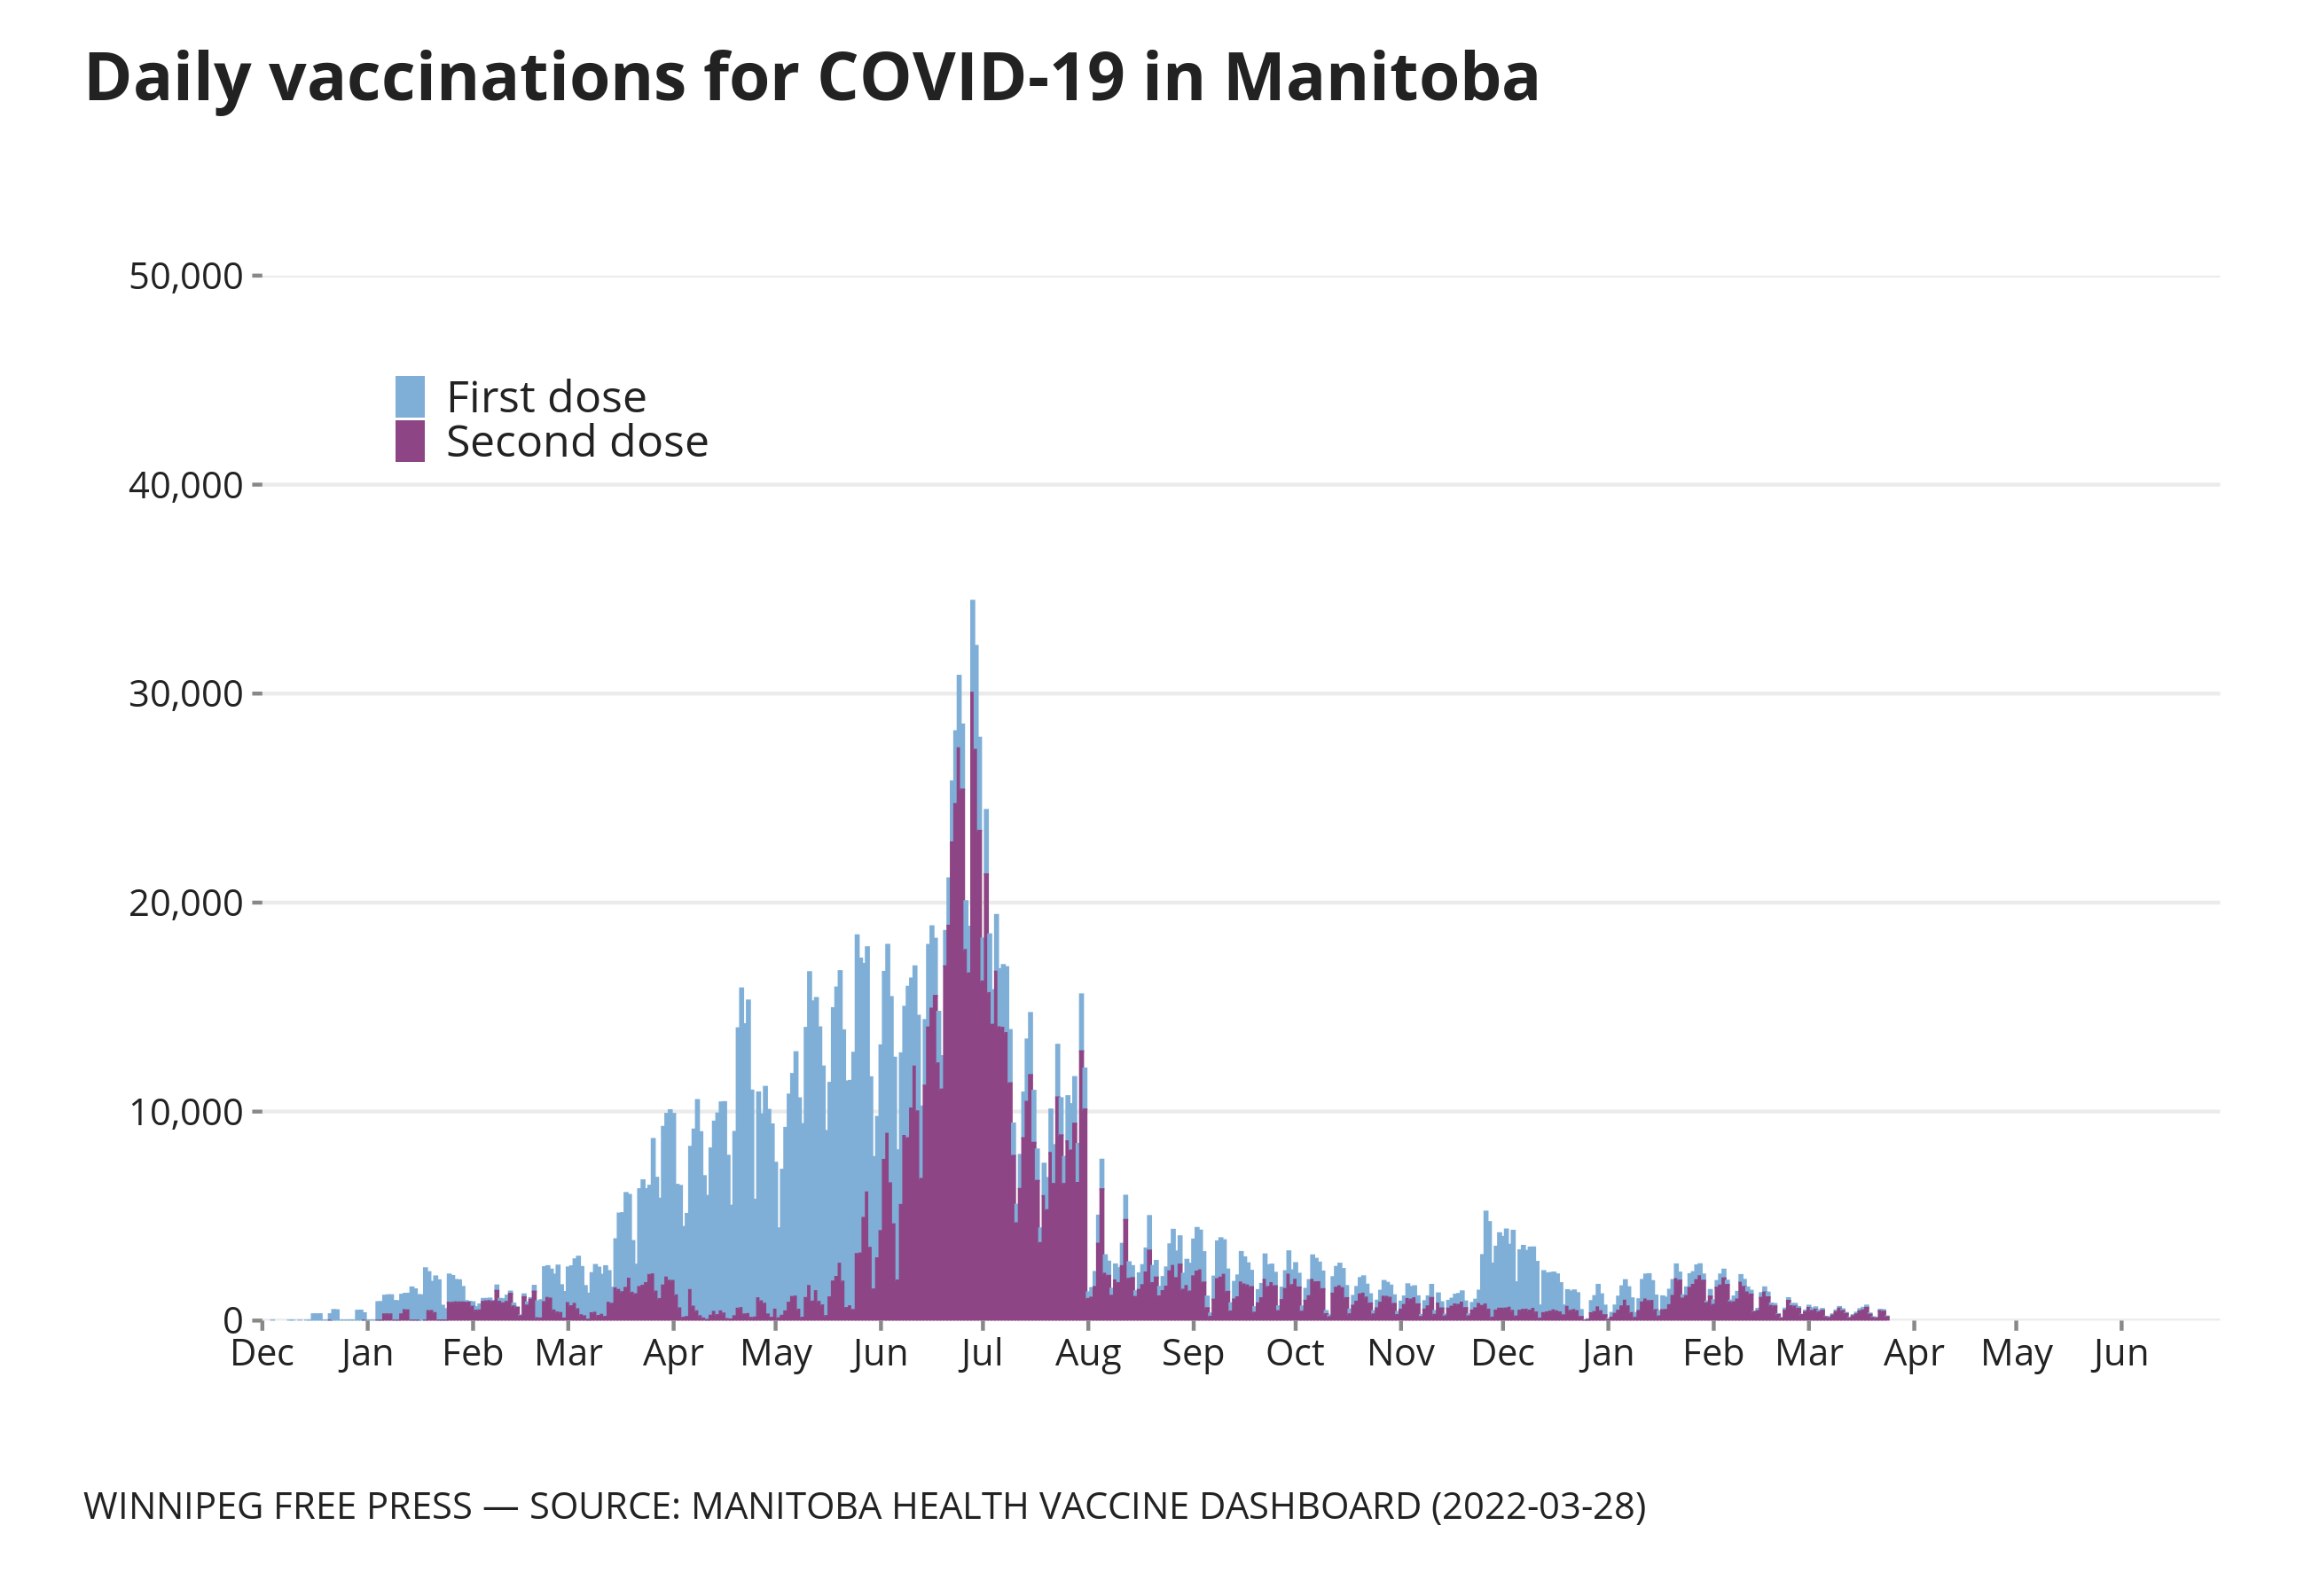 Graphic showing daily number of vaccine doses administered in Manitoba